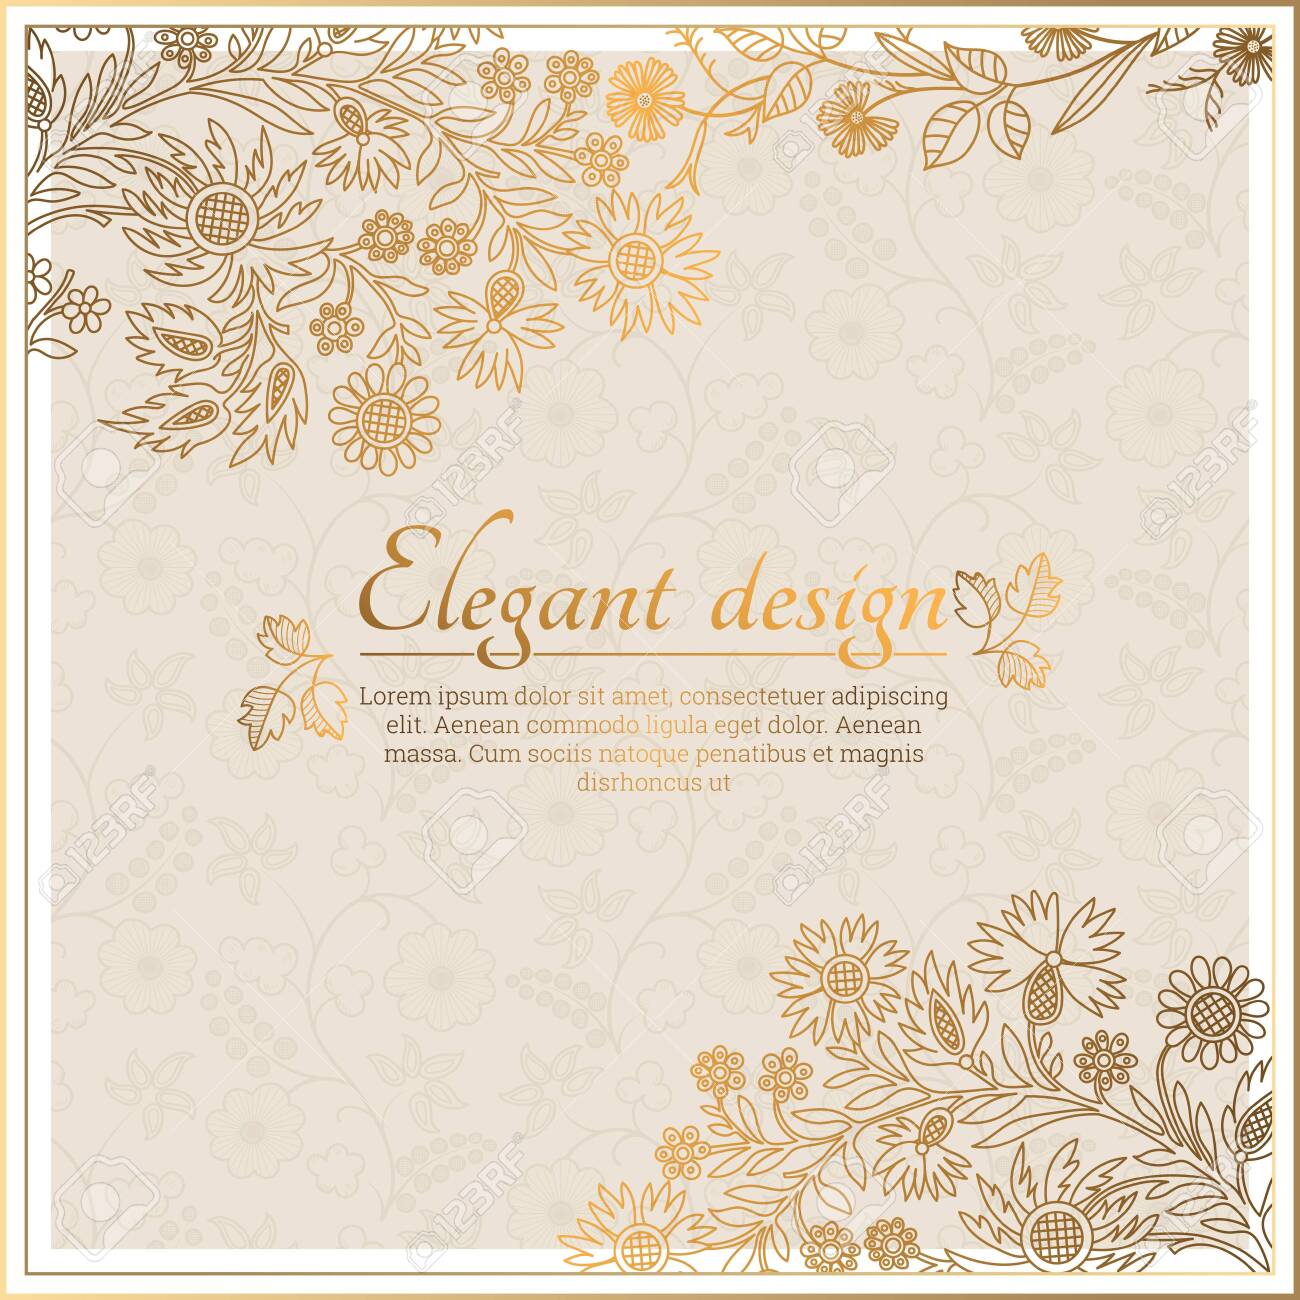 Baroque ornate frame with place for text. Stylish invitation card. Elegant greeting card. Vector element of graphic design - 147757371